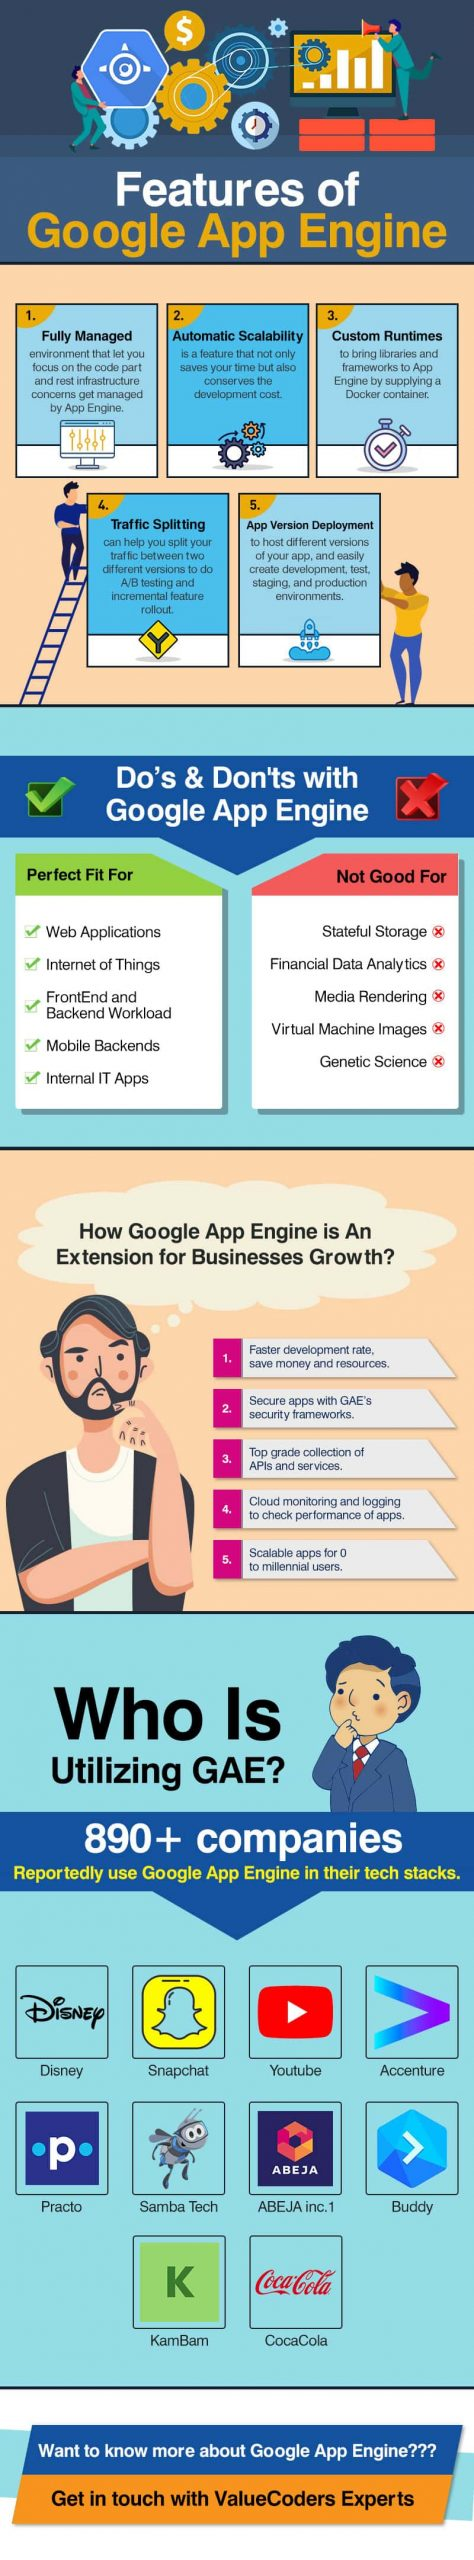 features-of-google-app-engine